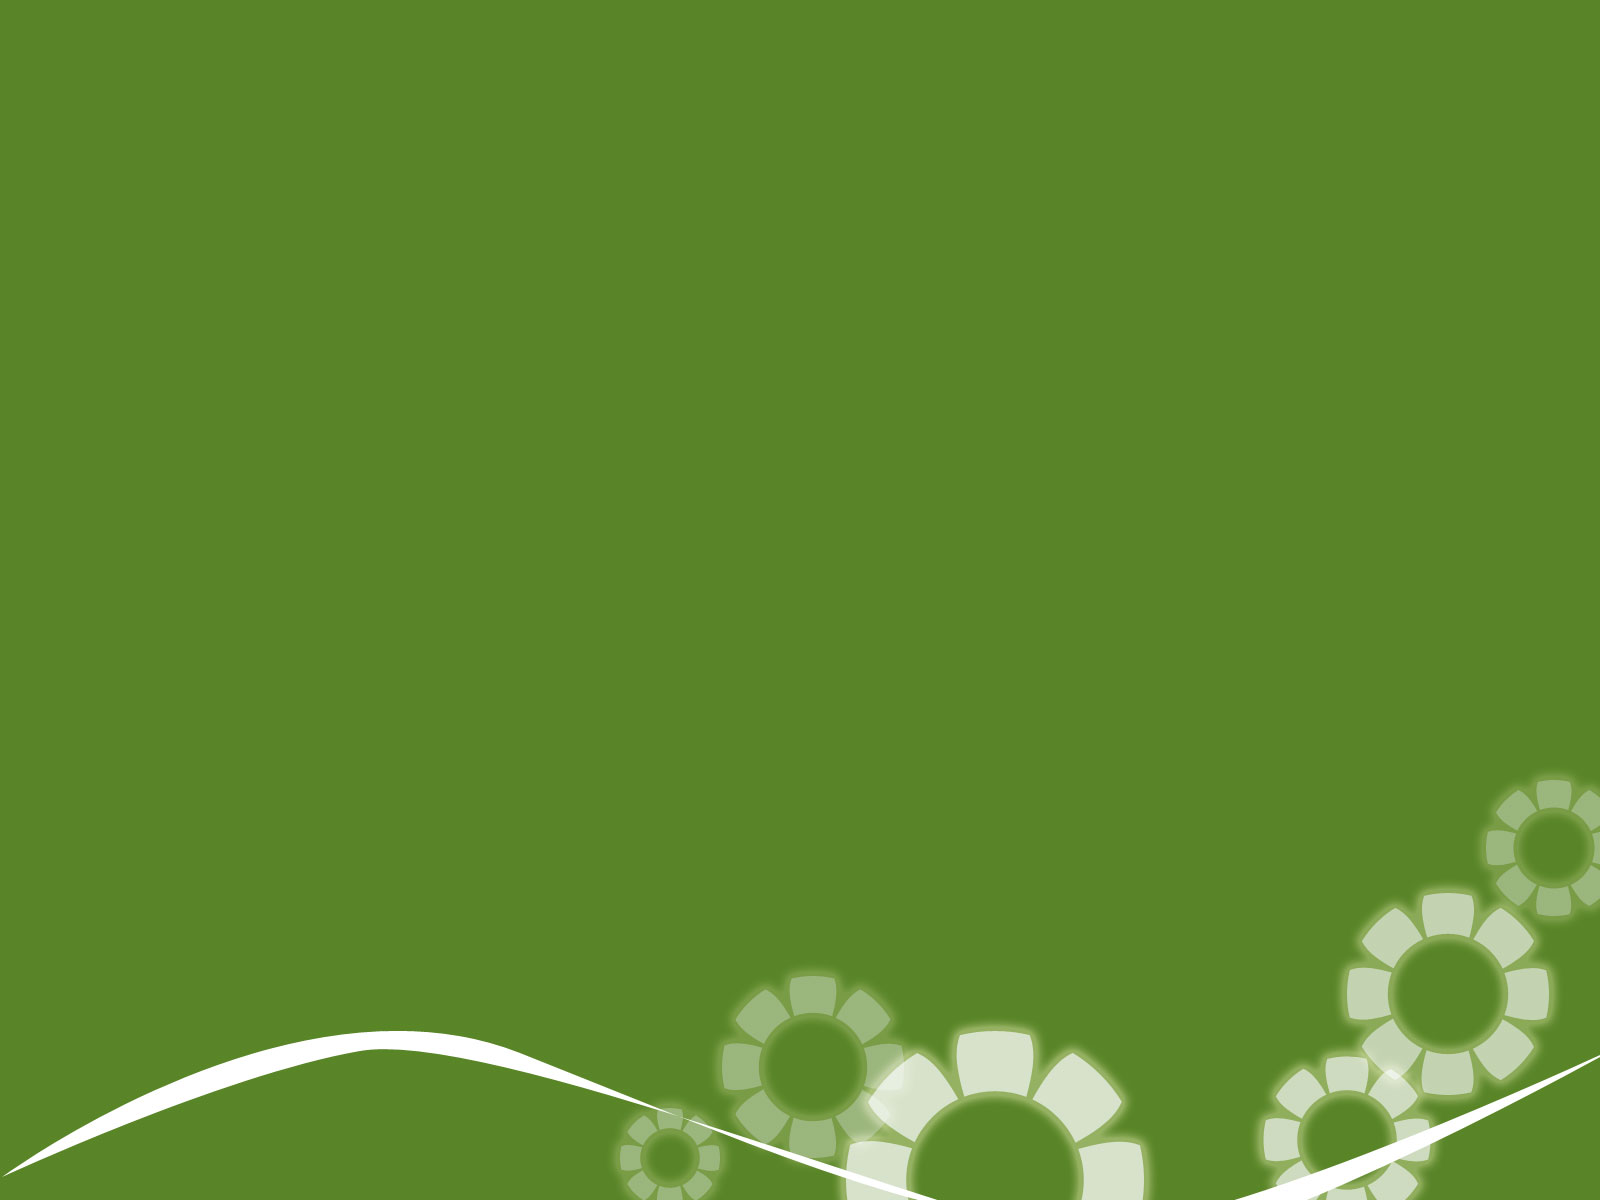 green background clipart - photo #17